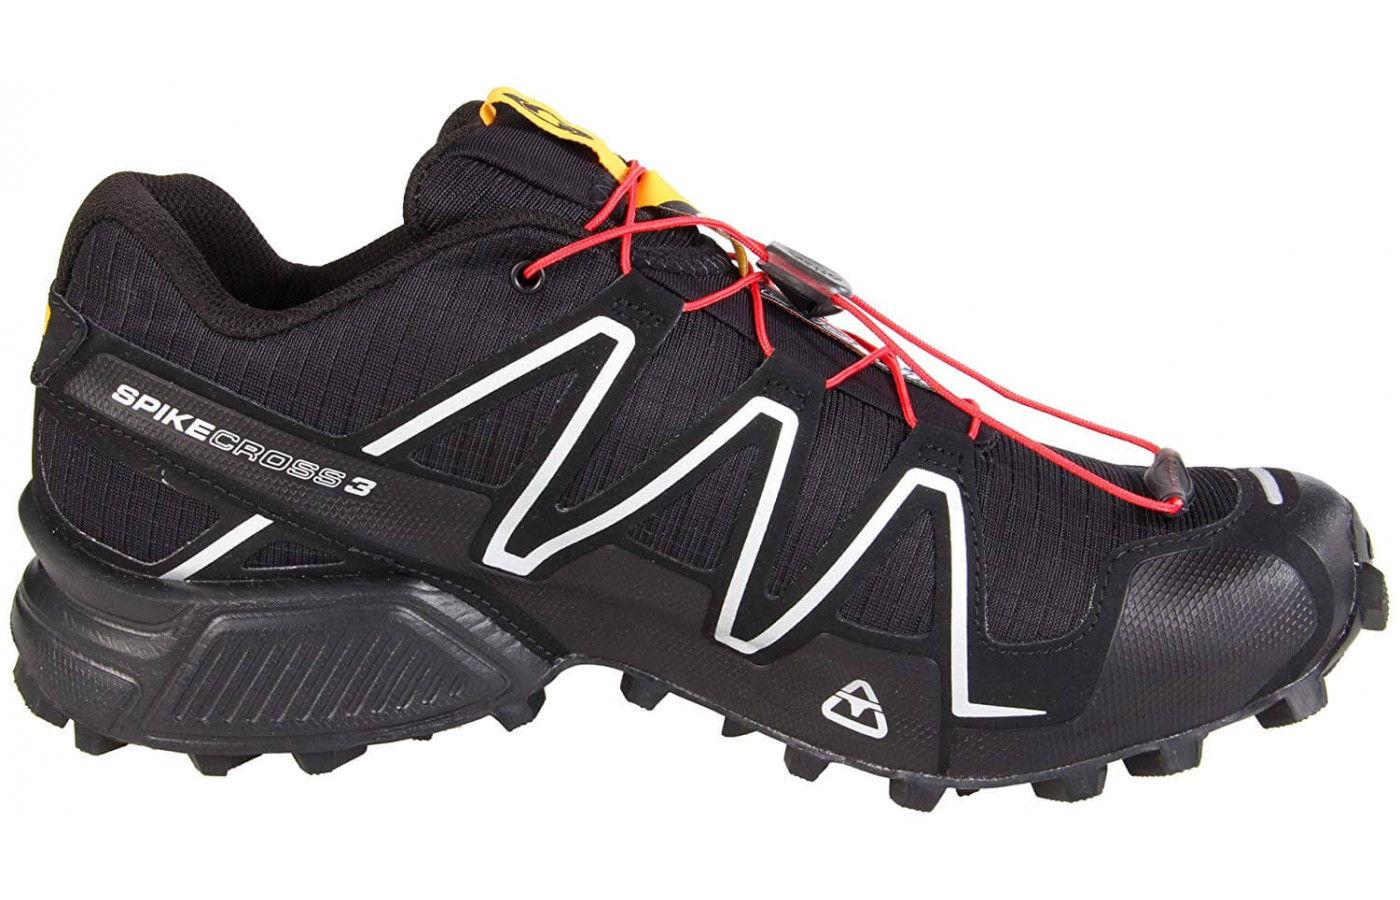 Salomon Spikecross 3 Medial